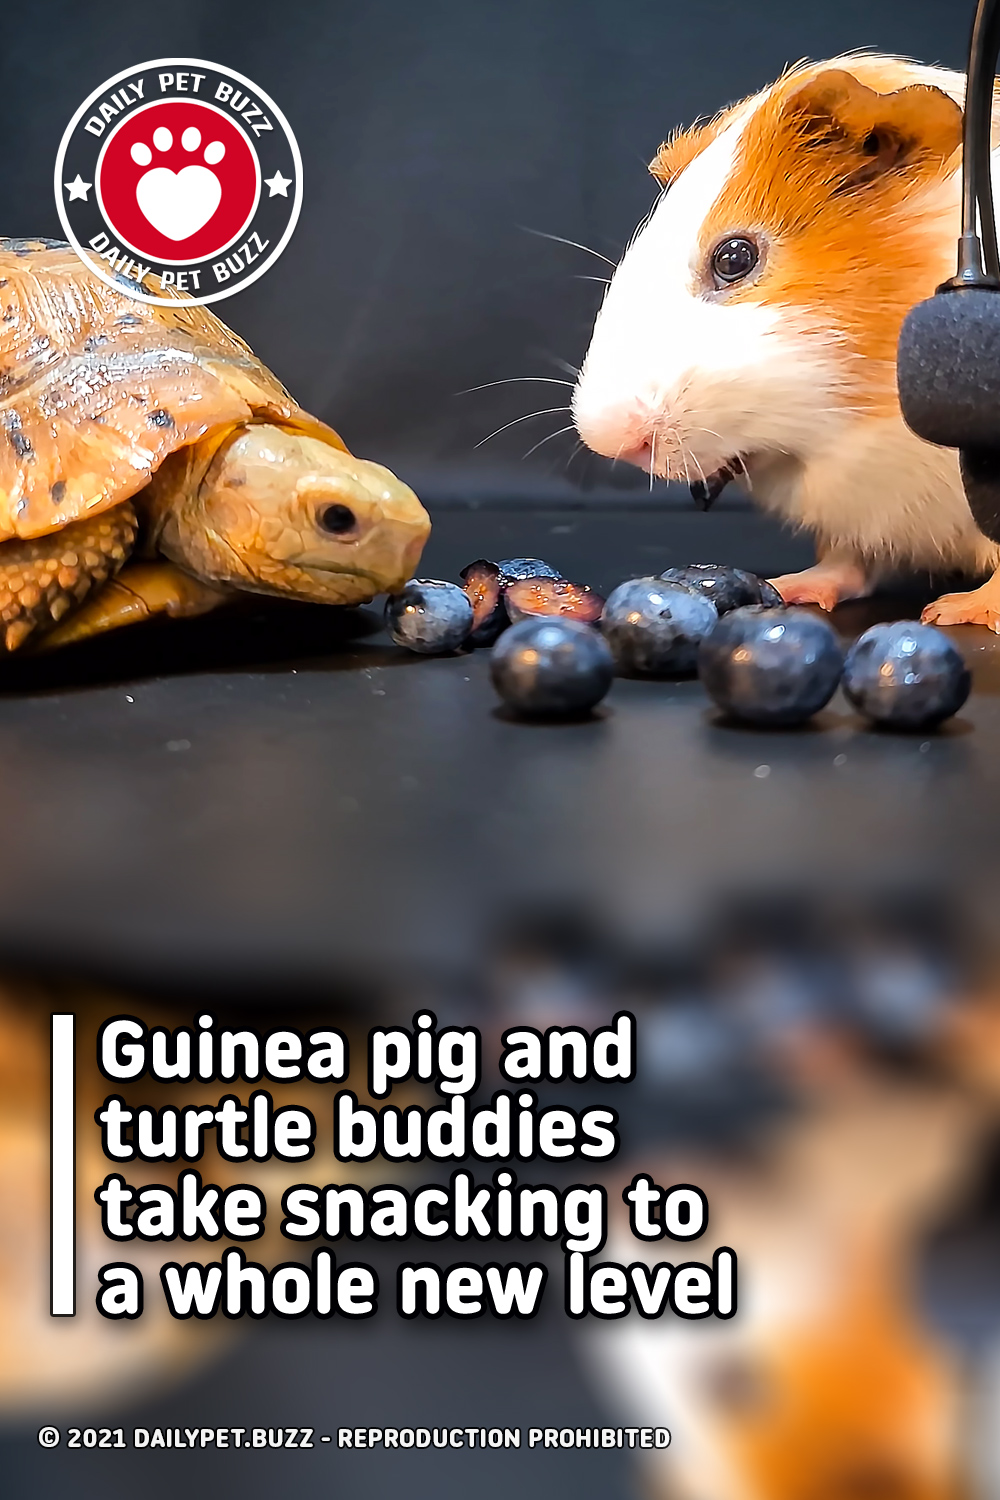 Guinea pig and turtle buddies take snacking to a whole new level